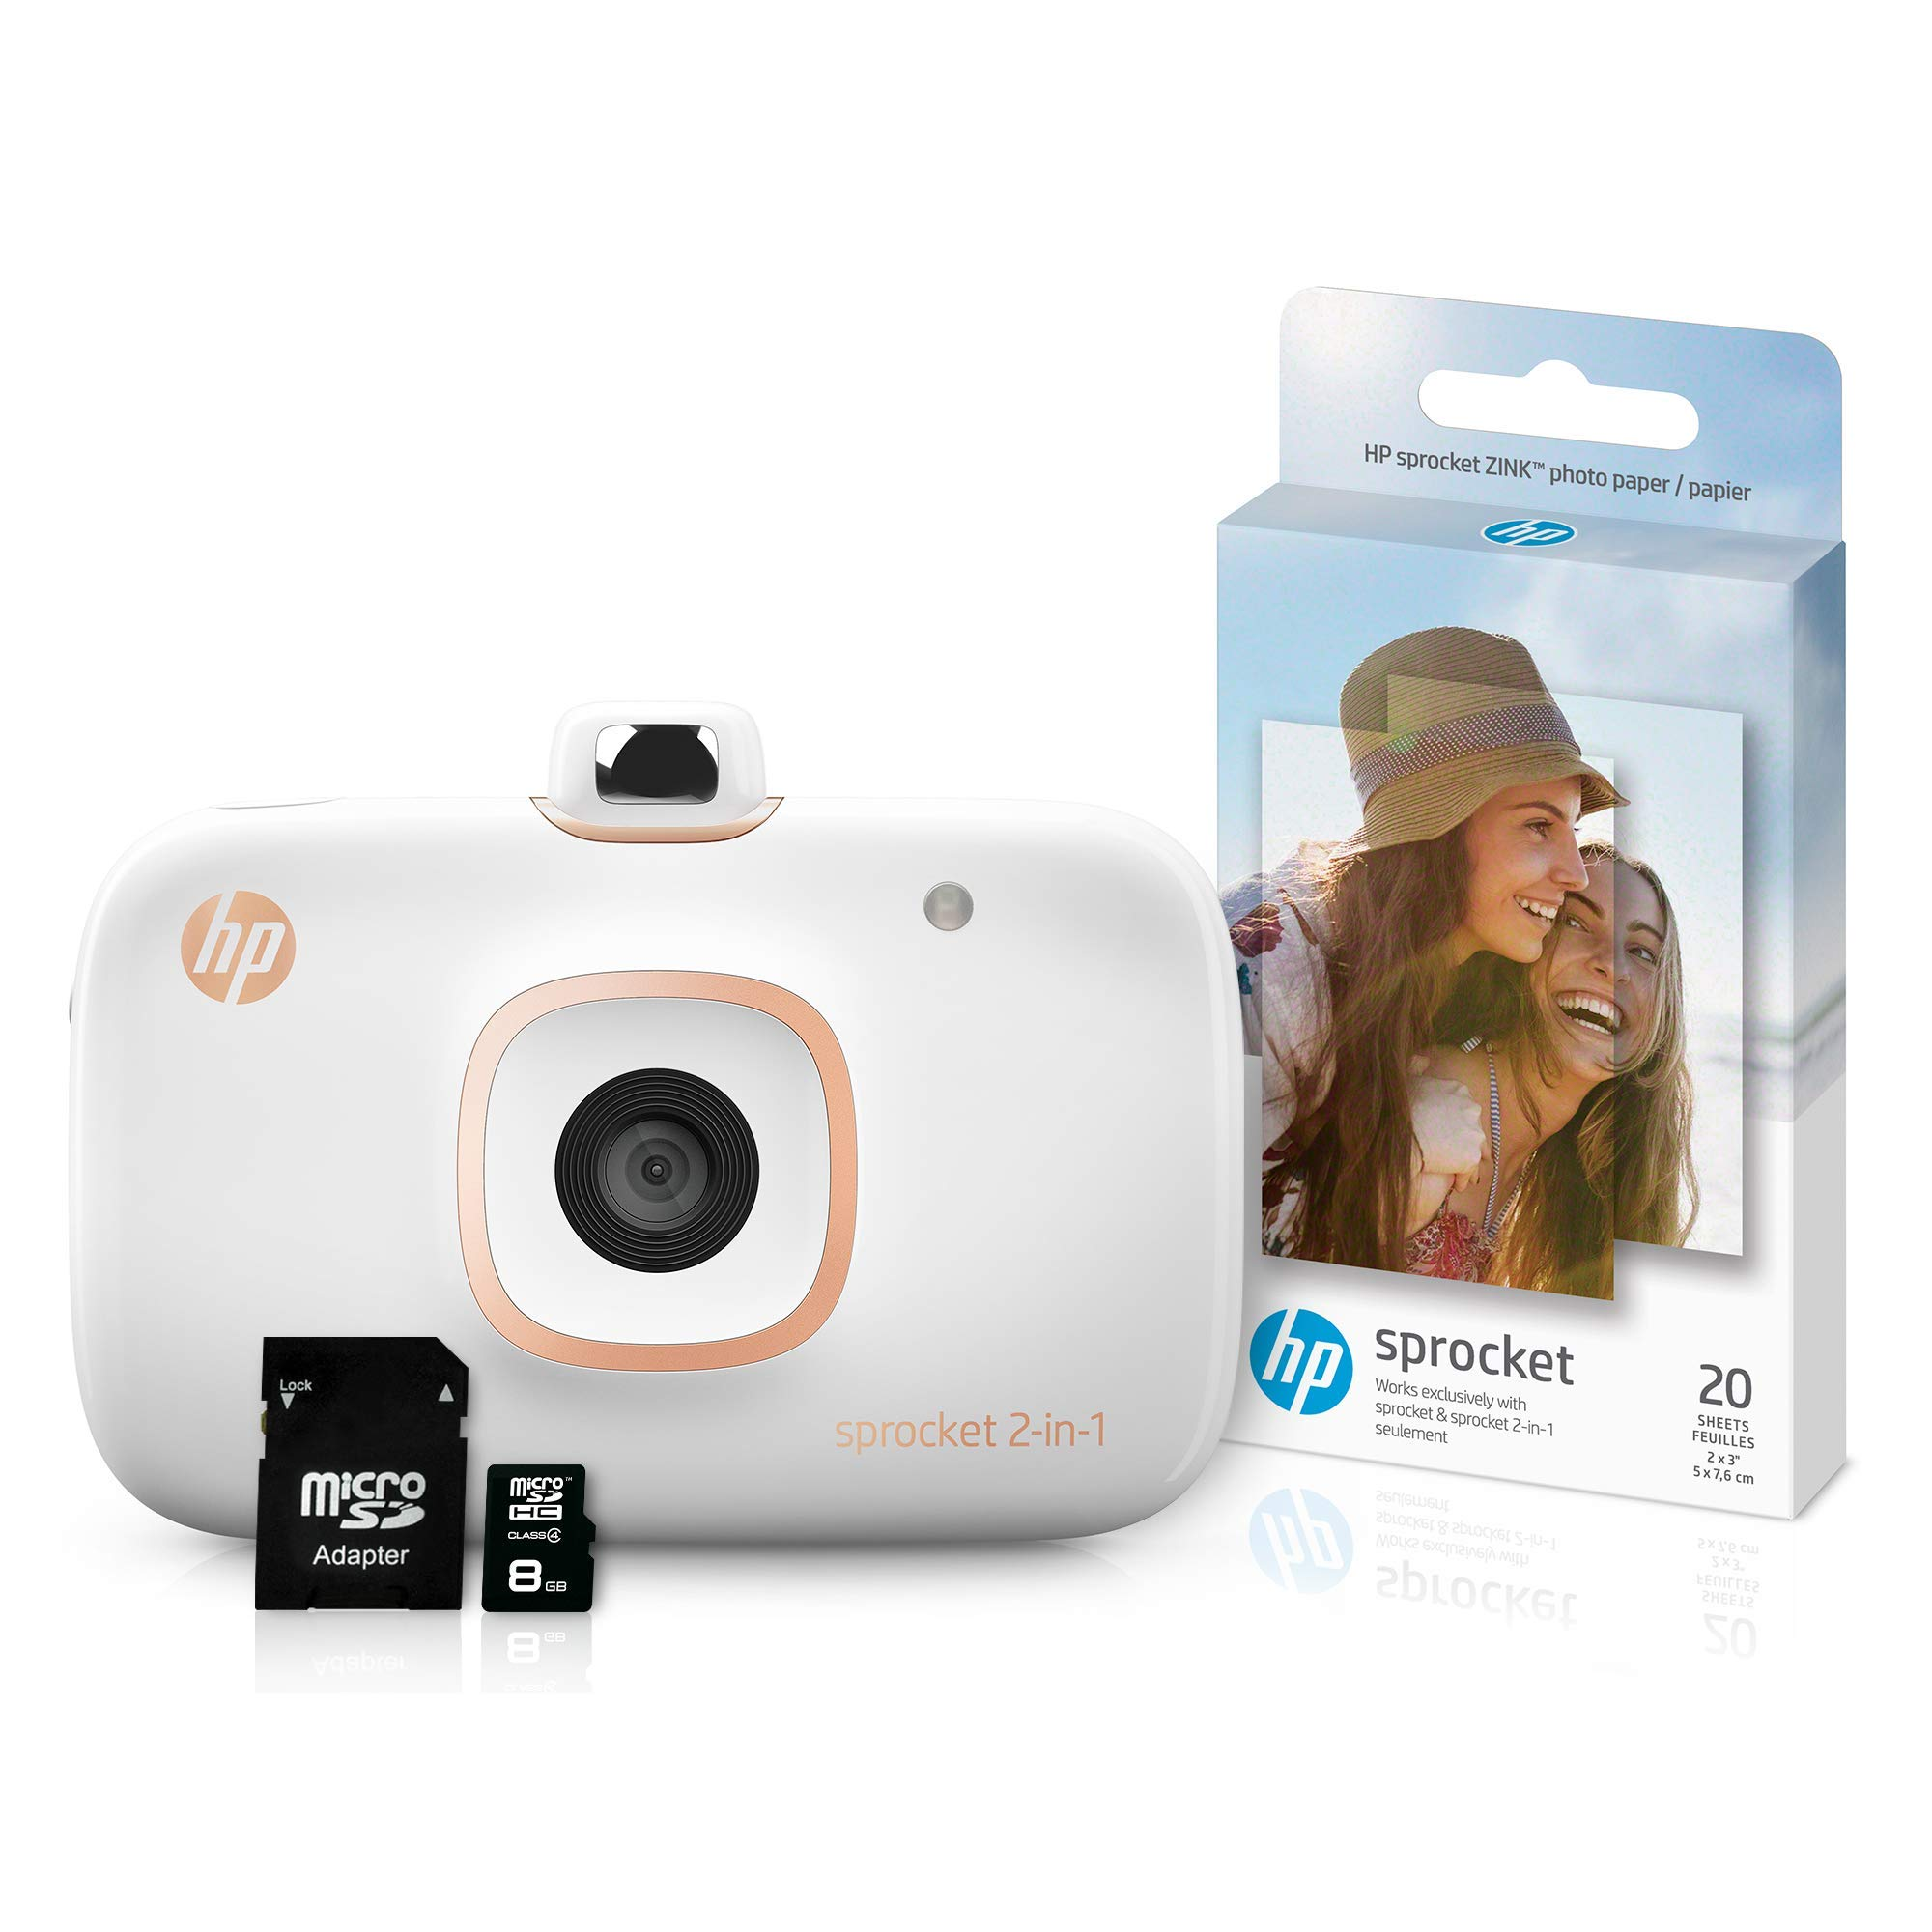 HP Sprocket 2-in-1 Portable Photo Printer & Instant Camera Bundle with 8GB MicroSD Card and Zink Photo Paper - White (5MS95A) (Renewed) by HP